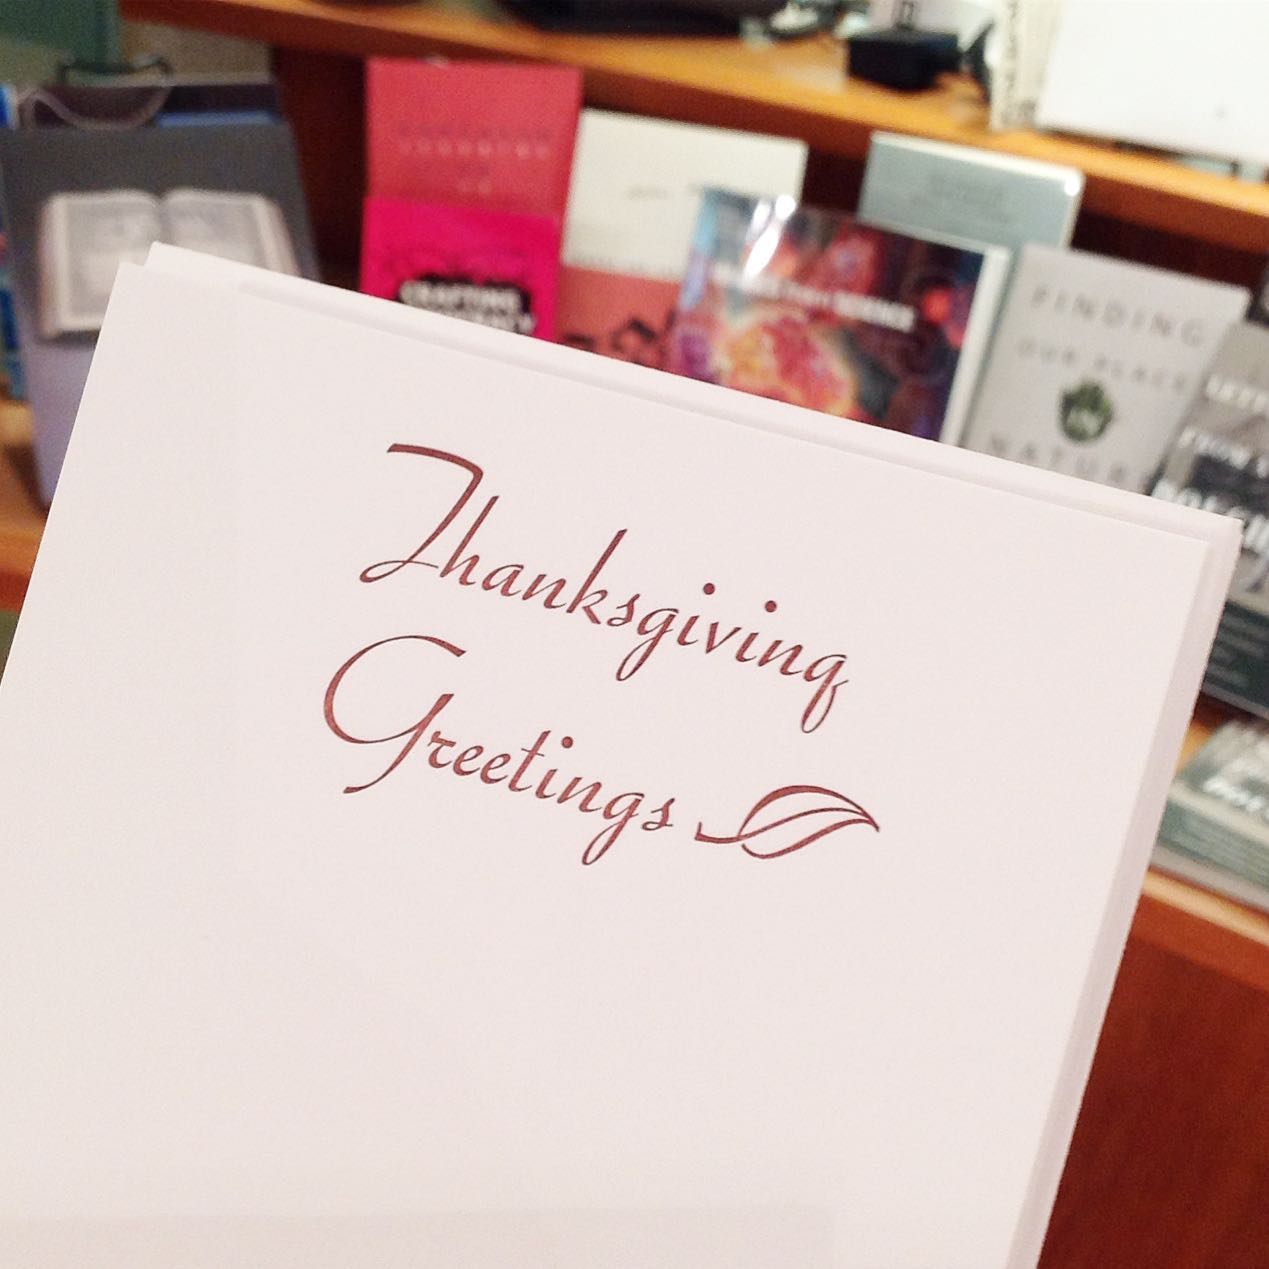 "Greeting card with the text ""Thanksgiving Greetings."" Book display in background."